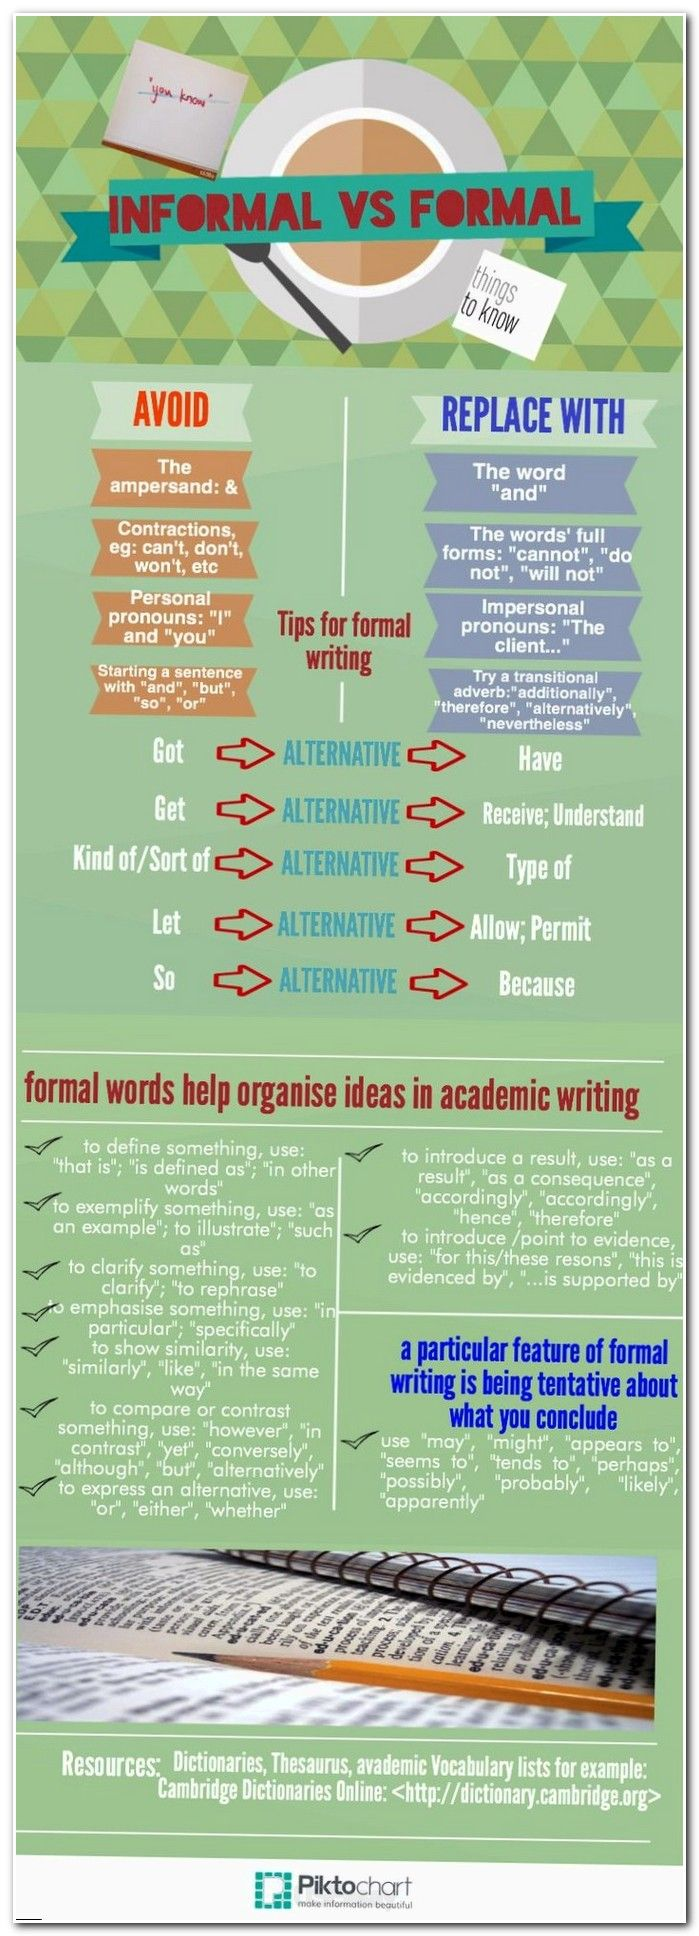 #essay #essaytips informational paragraph, apa documentation, cause and effect paragraph writing, argumentative speech topics examples, how to write a perfect paragraph, sample thesis introduction paragraph, how to write a topic outline, instant assignment writing, persuasive speech topics problem cause solution, english descriptive writing, topics for a persuasive essay, essay length, example of an apa format paper, how to make an intro, persuasive speech on